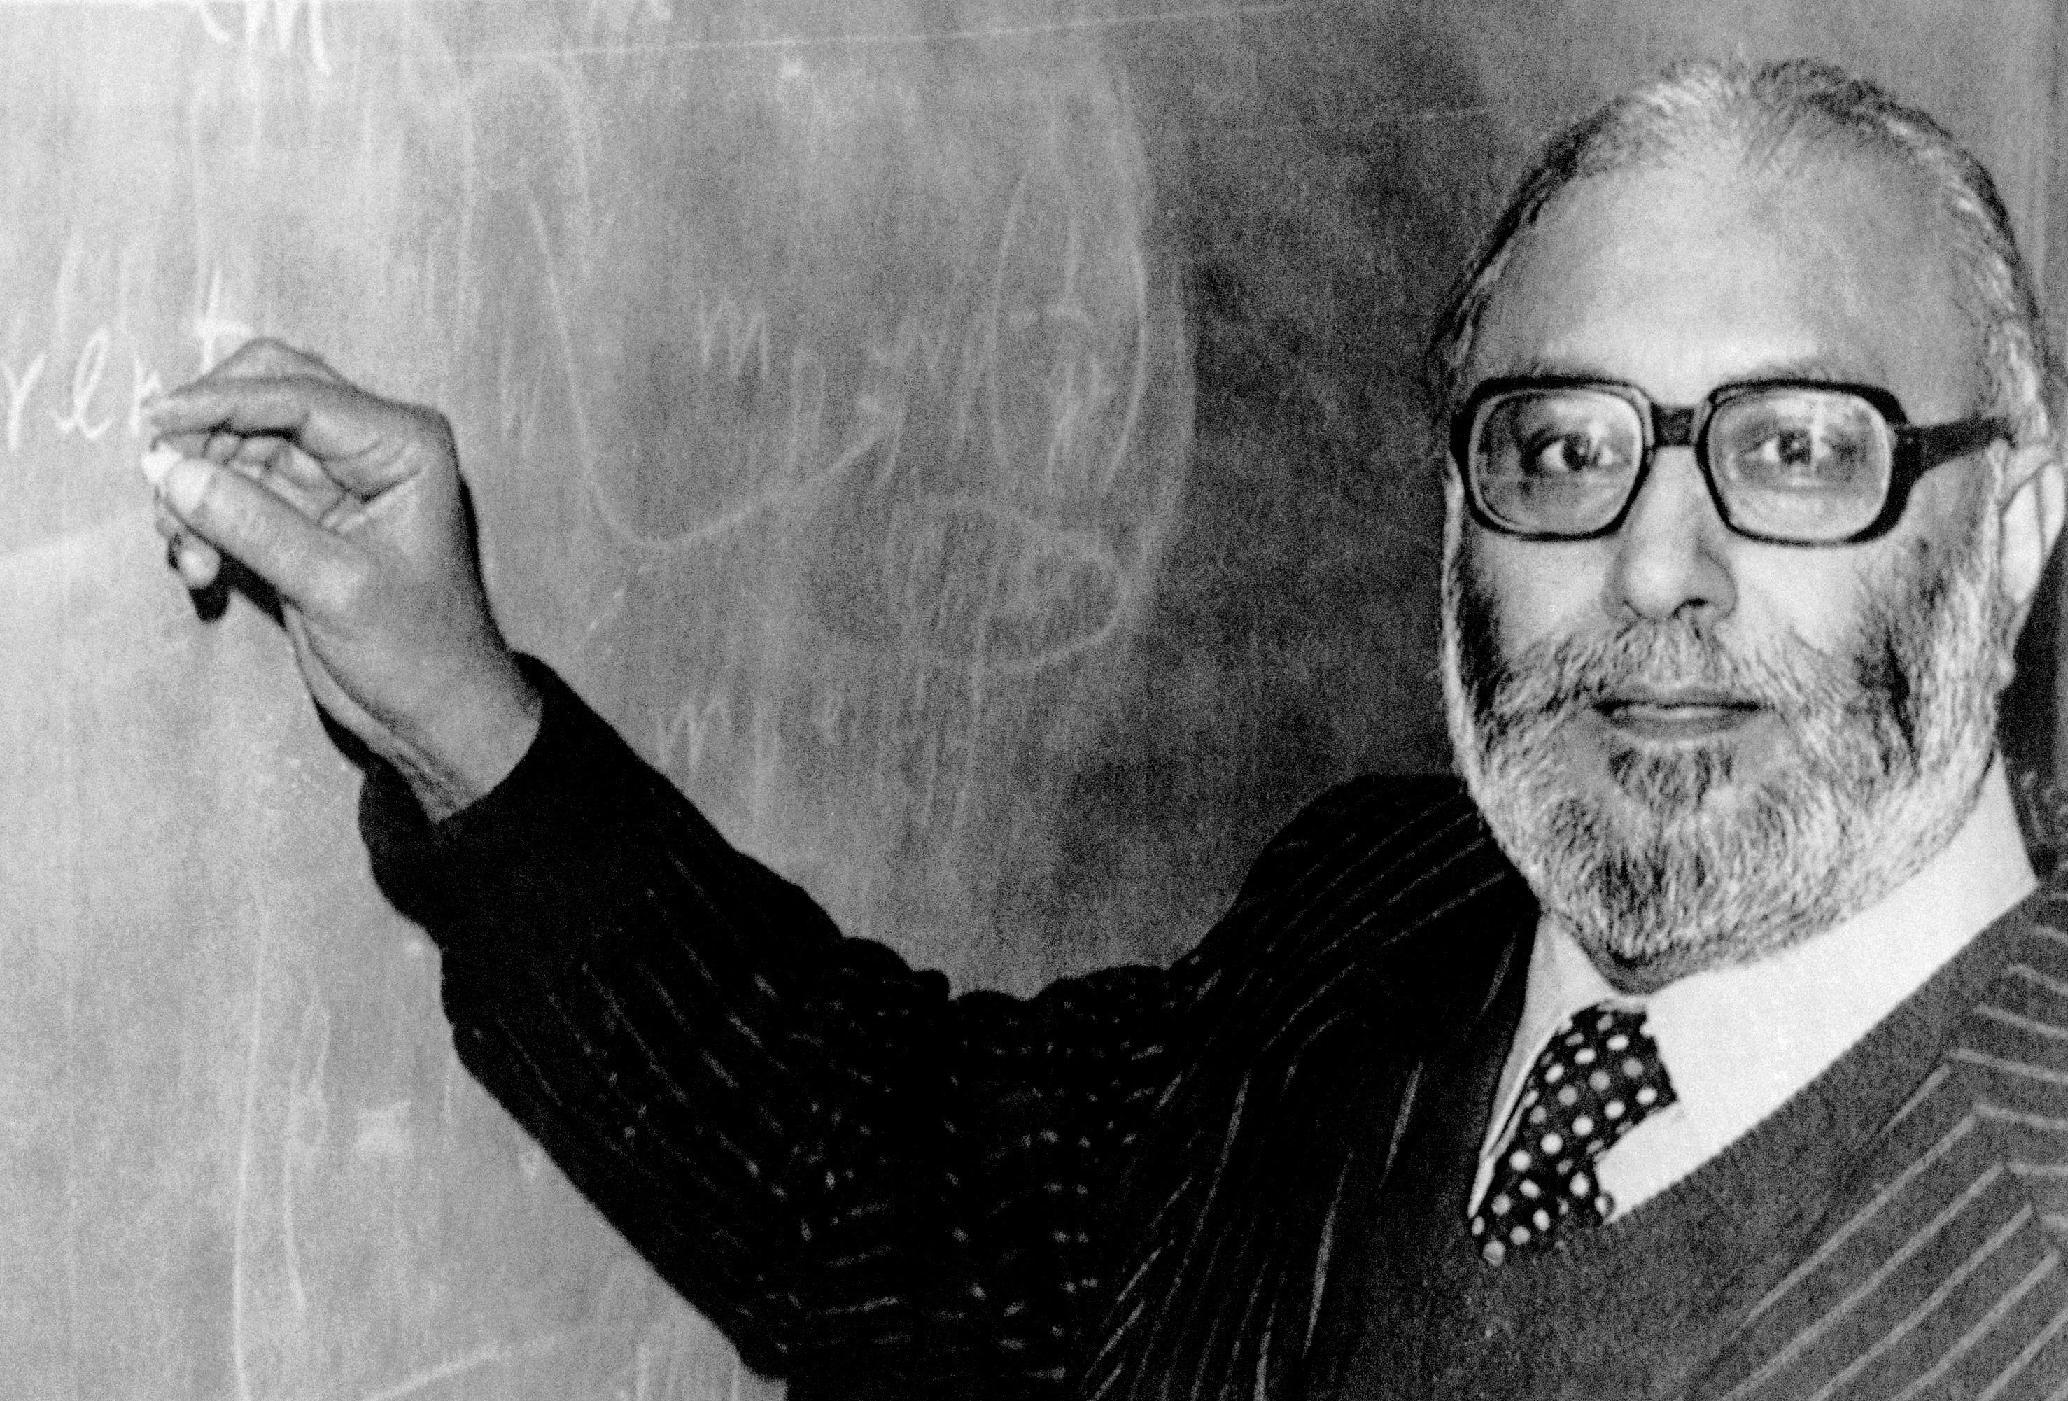 In this picture taken on Oct 15, 1979, the first Pakistani Nobel Prize laureate Professor Abdus Salam, pictured in London, England after he heard the news that he was joint winner of the 1979 Nobel Prize for Physics. Salam, who belongs to a minority Muslim sect , helped develop the theoretical framework that led physicists to discover the ?God particle? this week, stoking worldwide excitement, yet he is not celebrated by his country and schoolchildren are rarely even taught his name.(AP Photo)